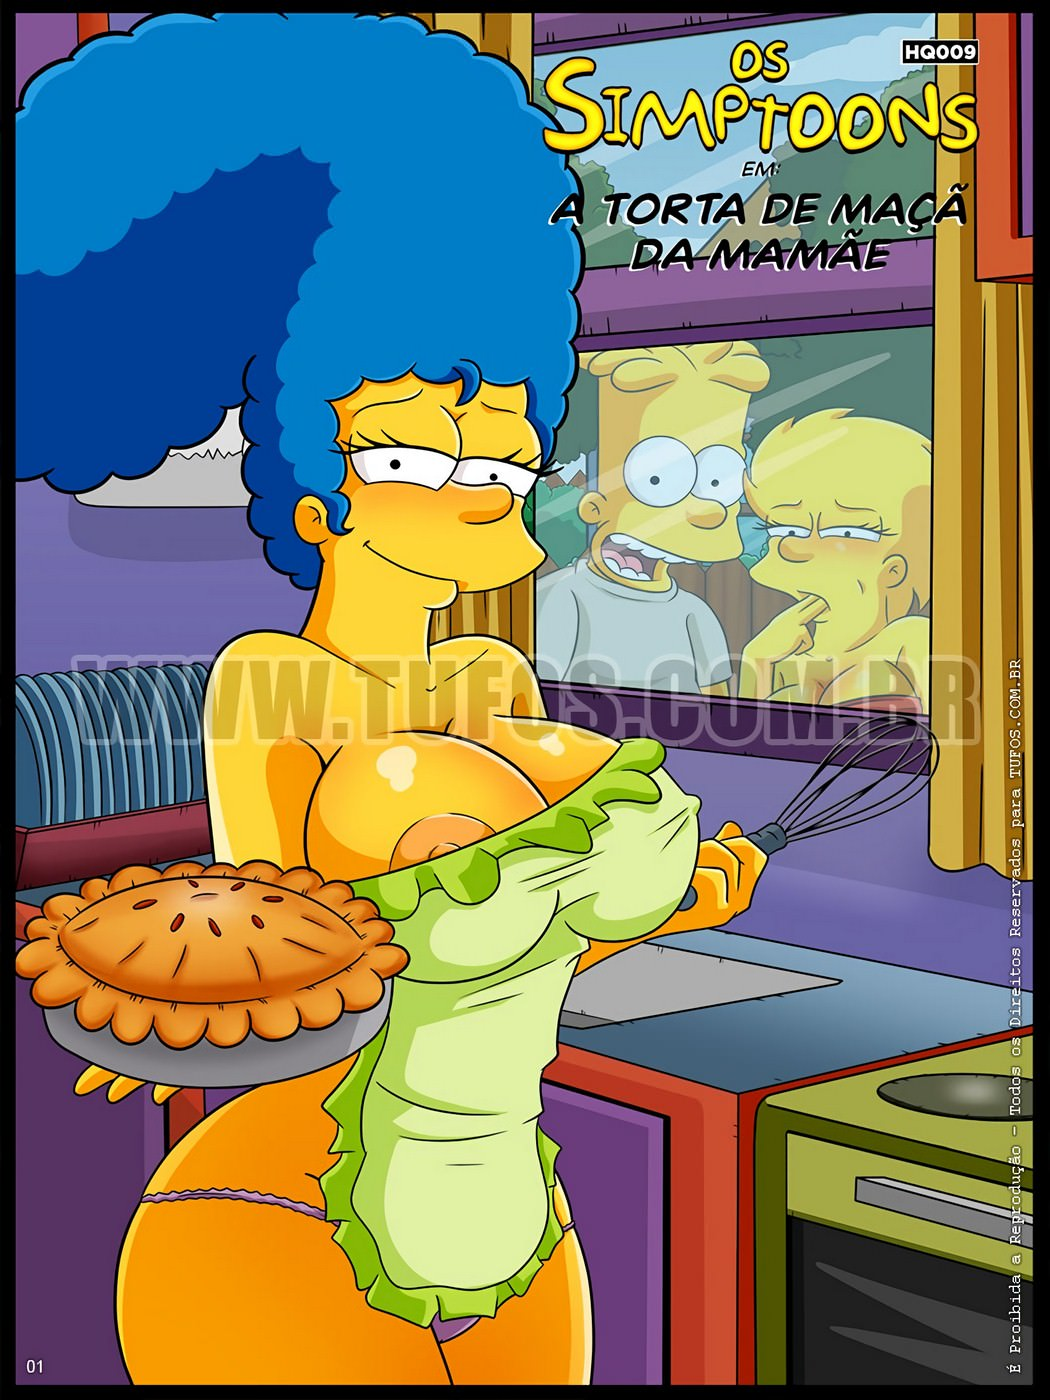 3D Porno Simpson the simpsons 9 - mom's apple pie - simpsons online at world